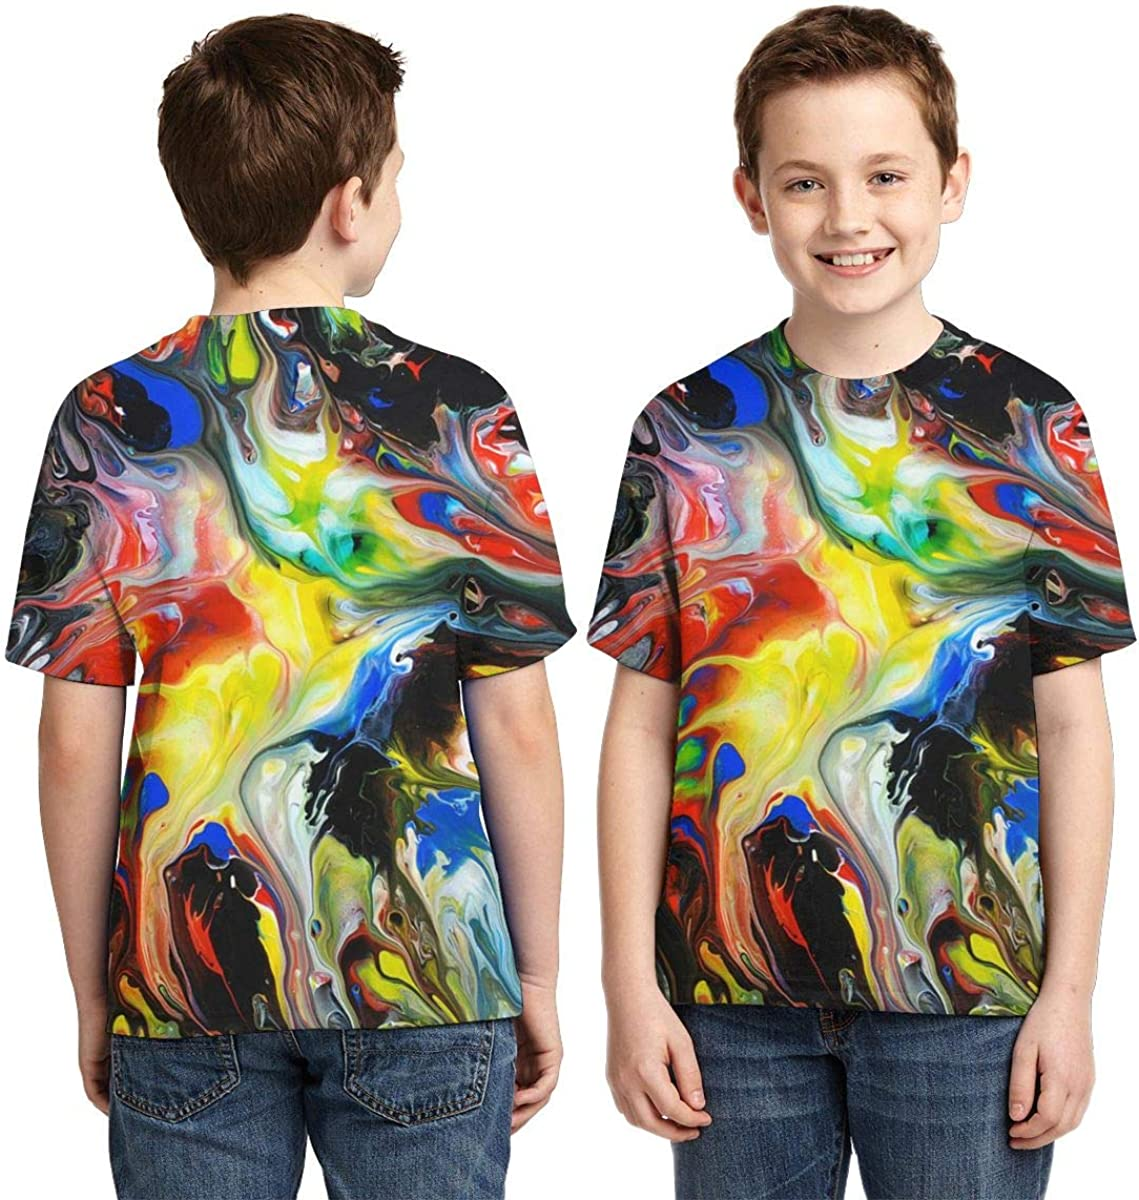 AMODECO Abstract Art Fluid Painting 3D Printed Tee T-Shirt for Youth Teenager Boys Girls